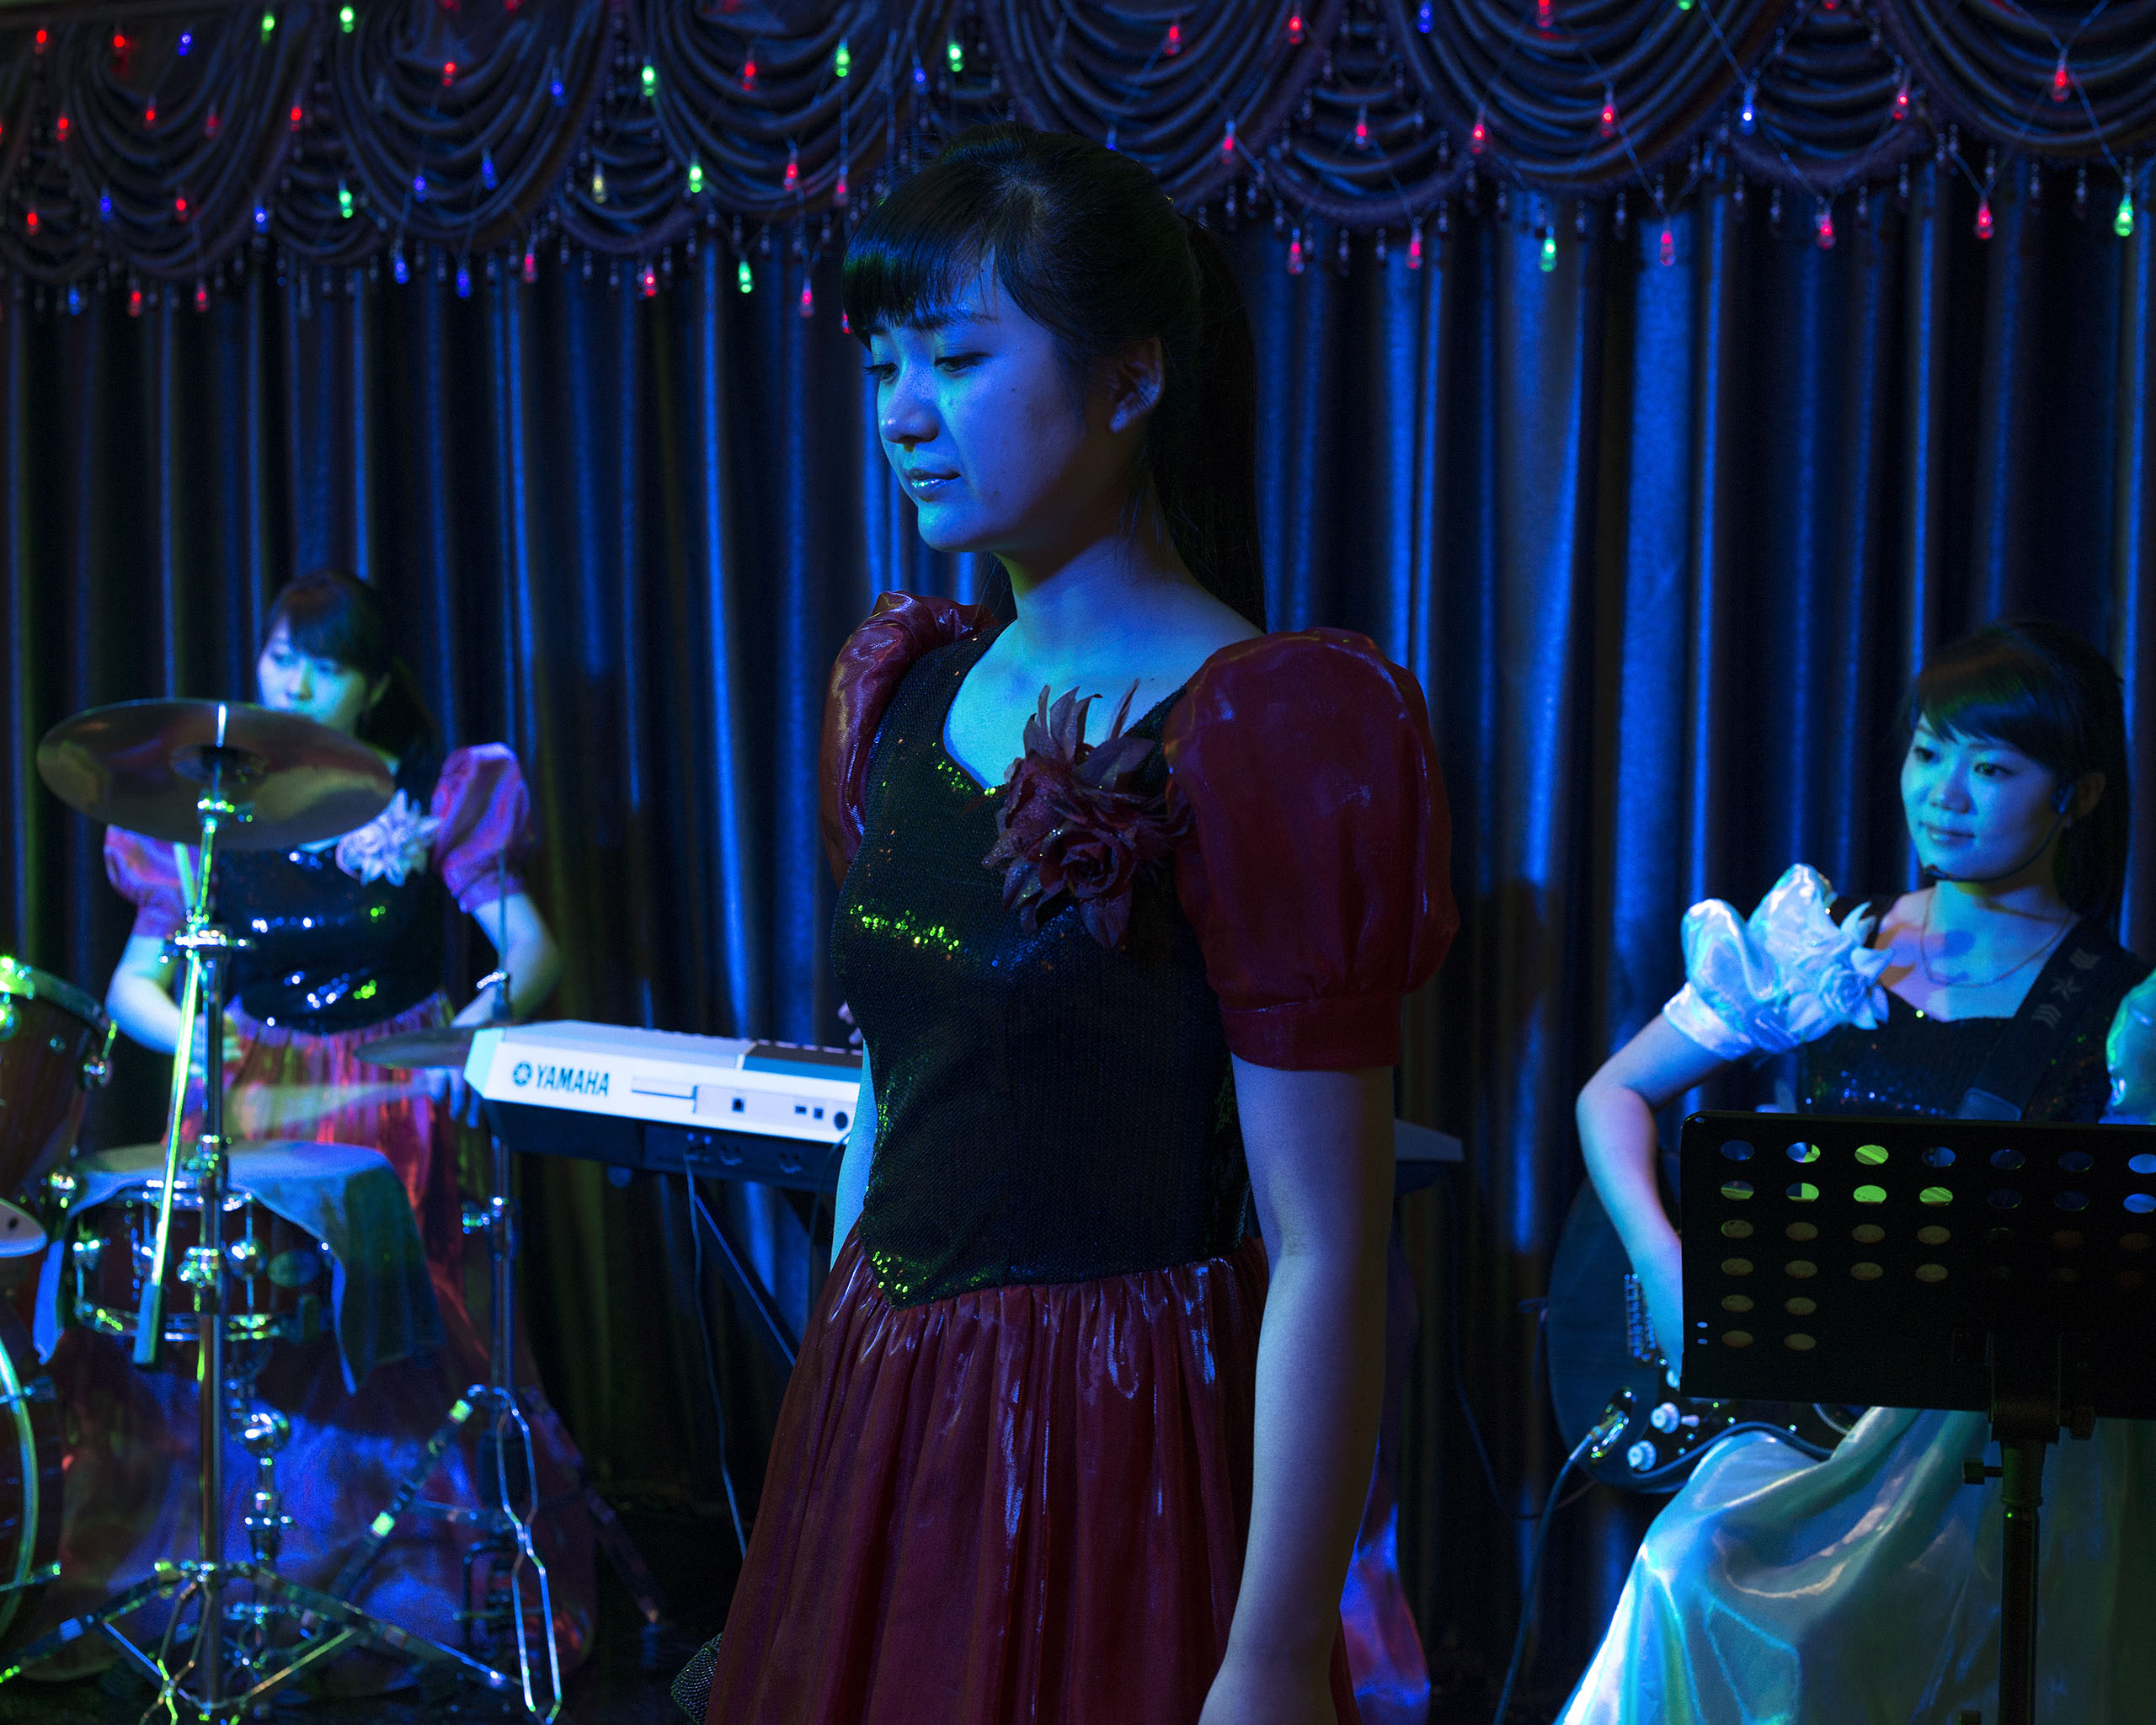 A North Korean  performer at a traditional musical show in a North Korean restaurant near Tumen, China.